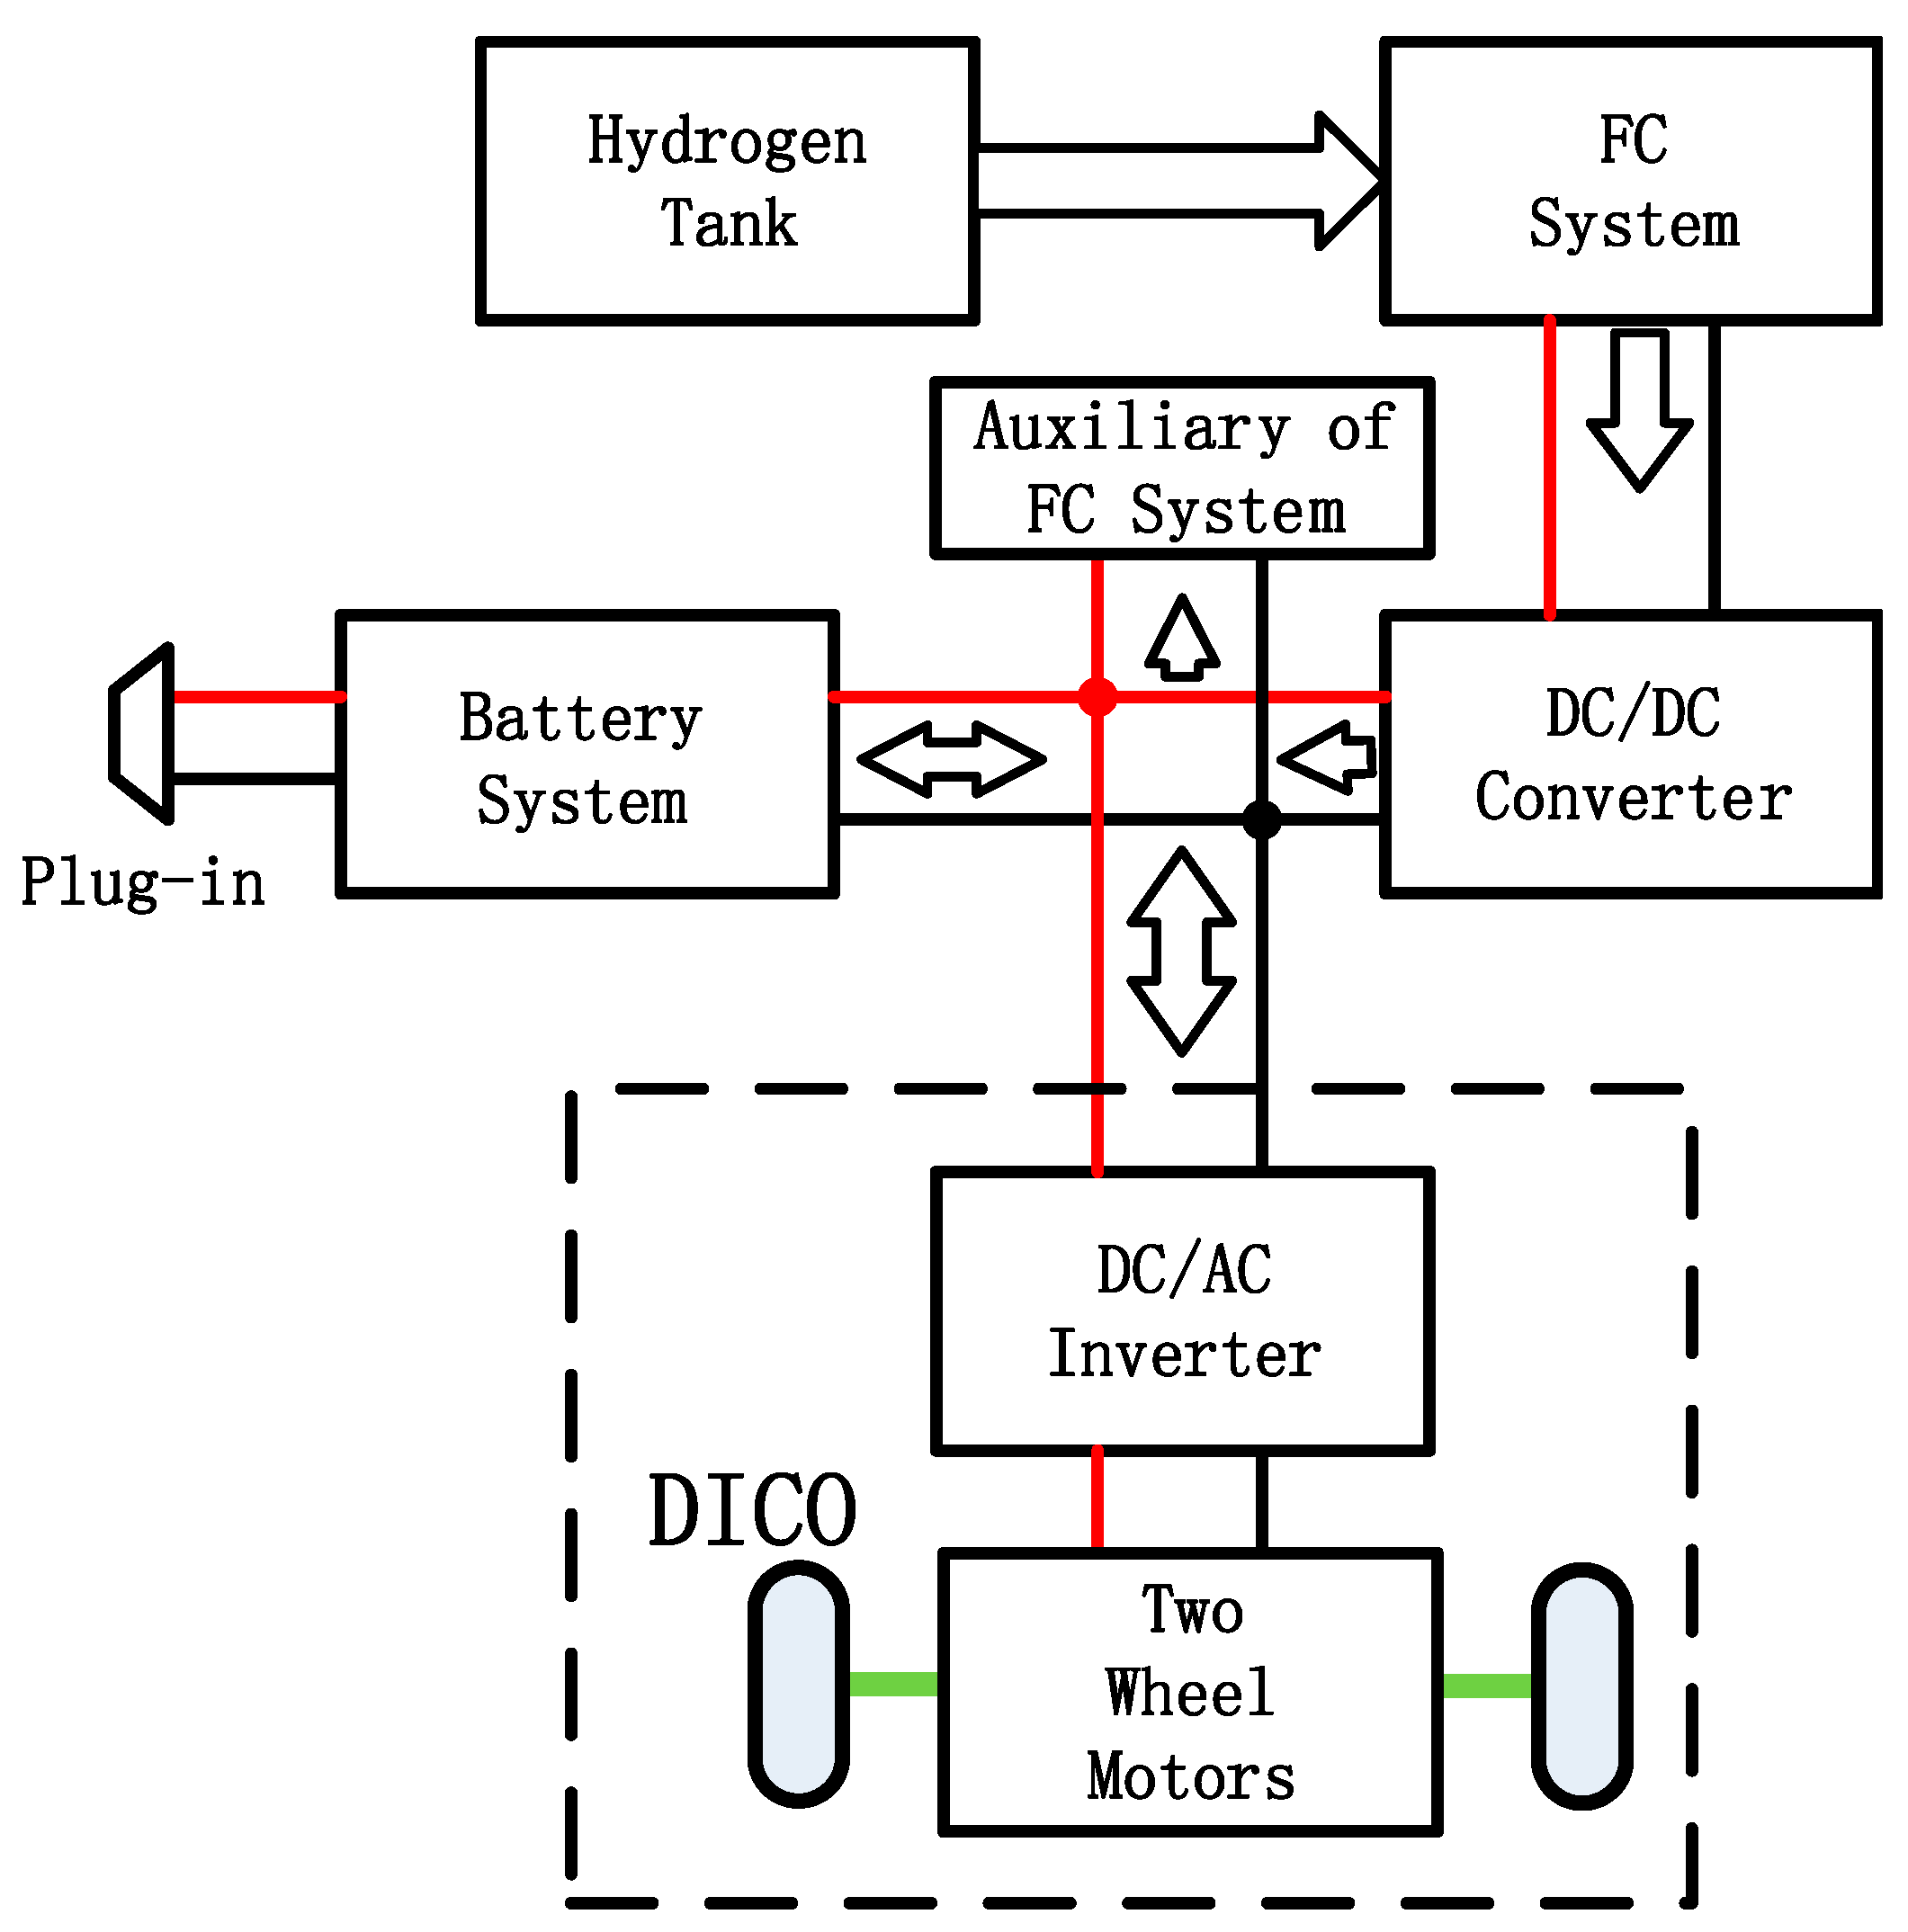 Energies | Free Full-Text | Development of a PEM Fuel Cell City Bus